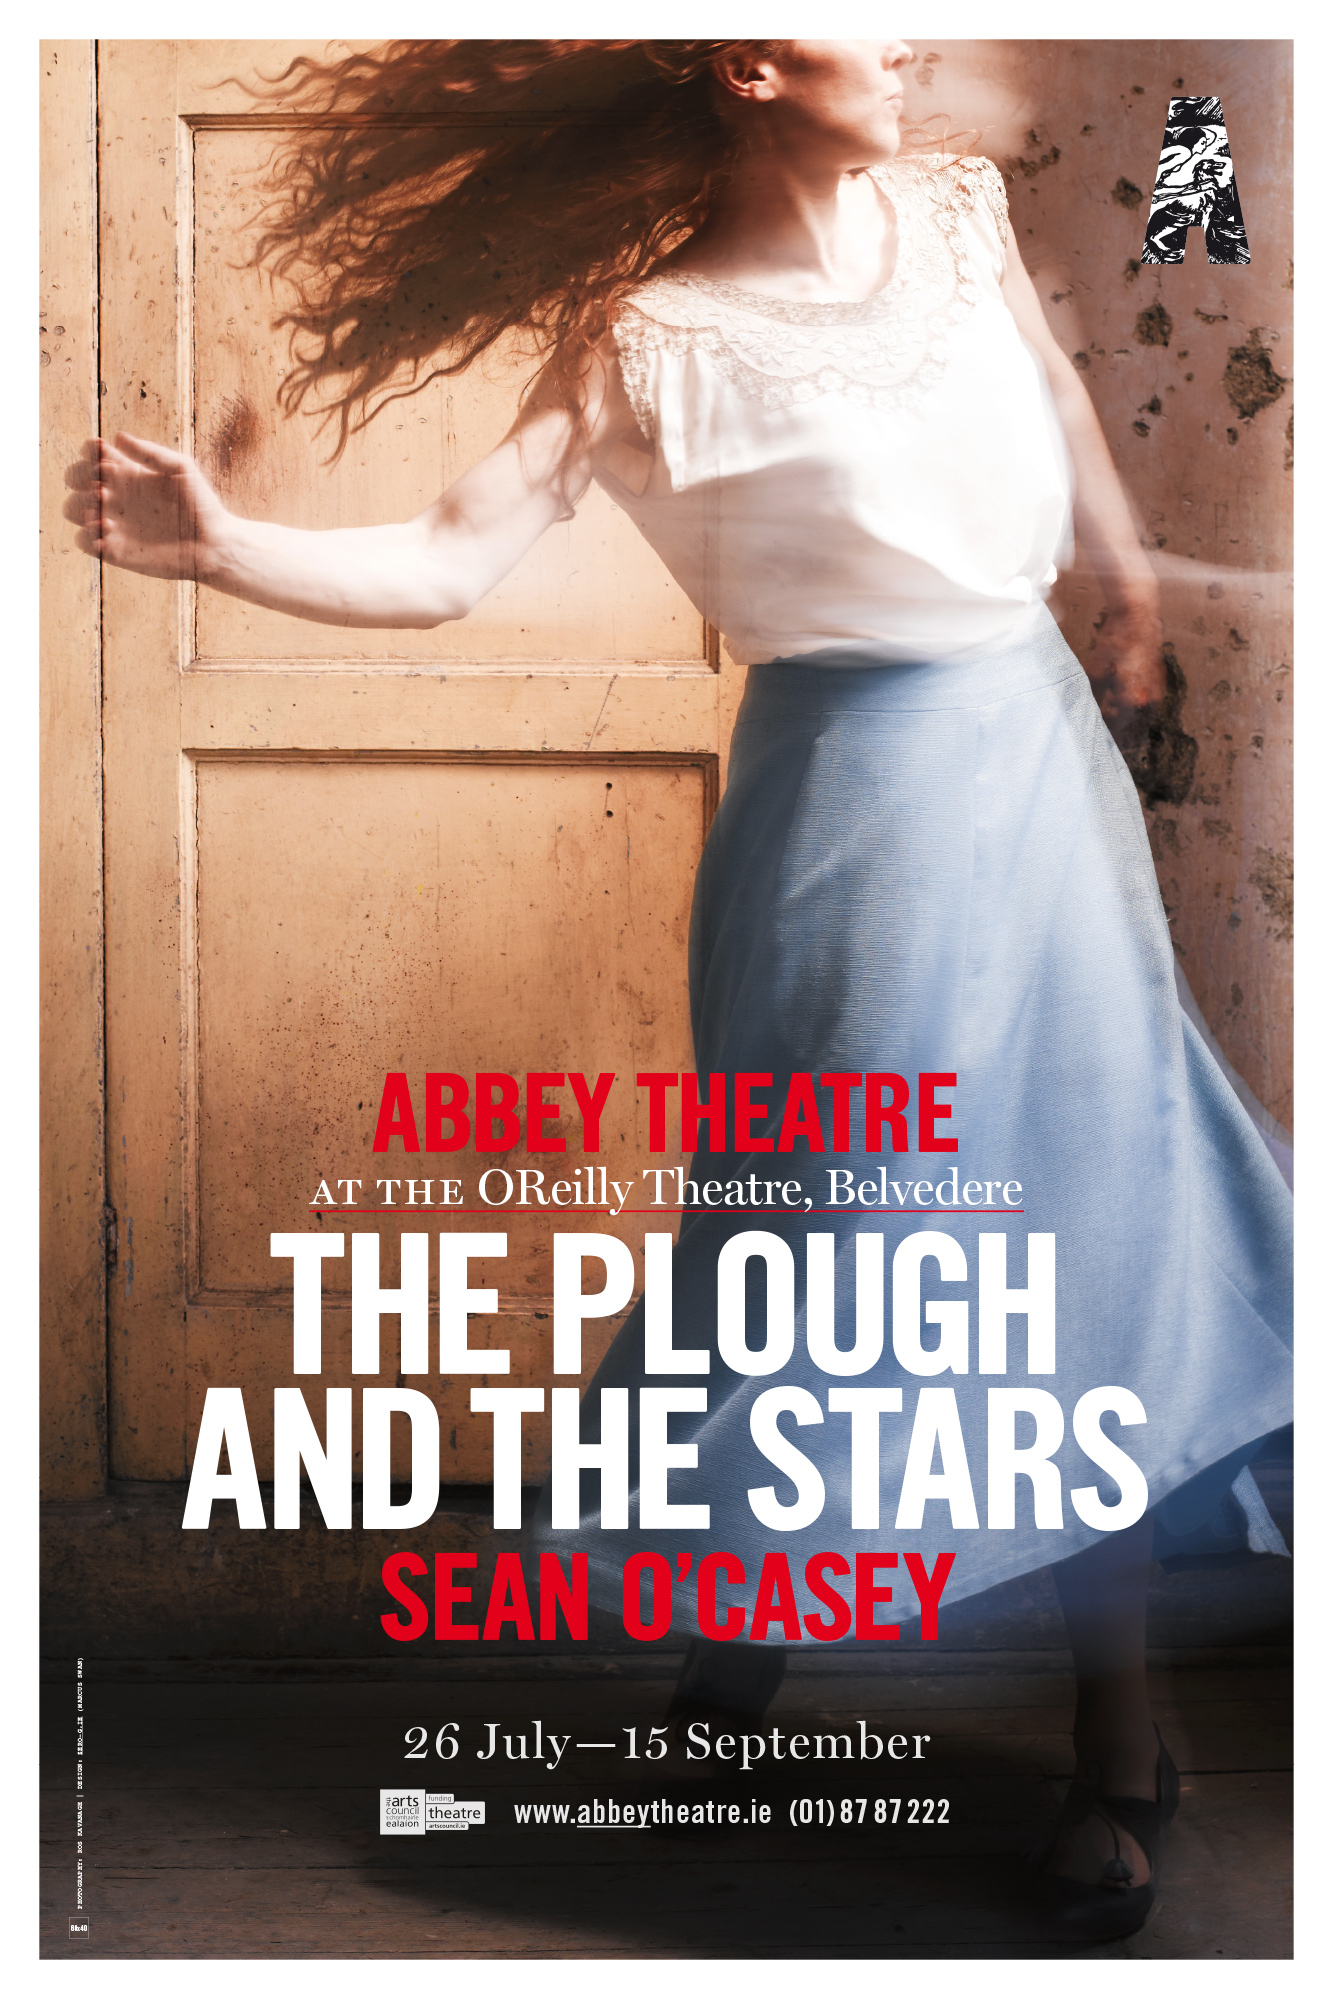 Cover image: Abbey Theatre – The Plough and the Stars (2012)